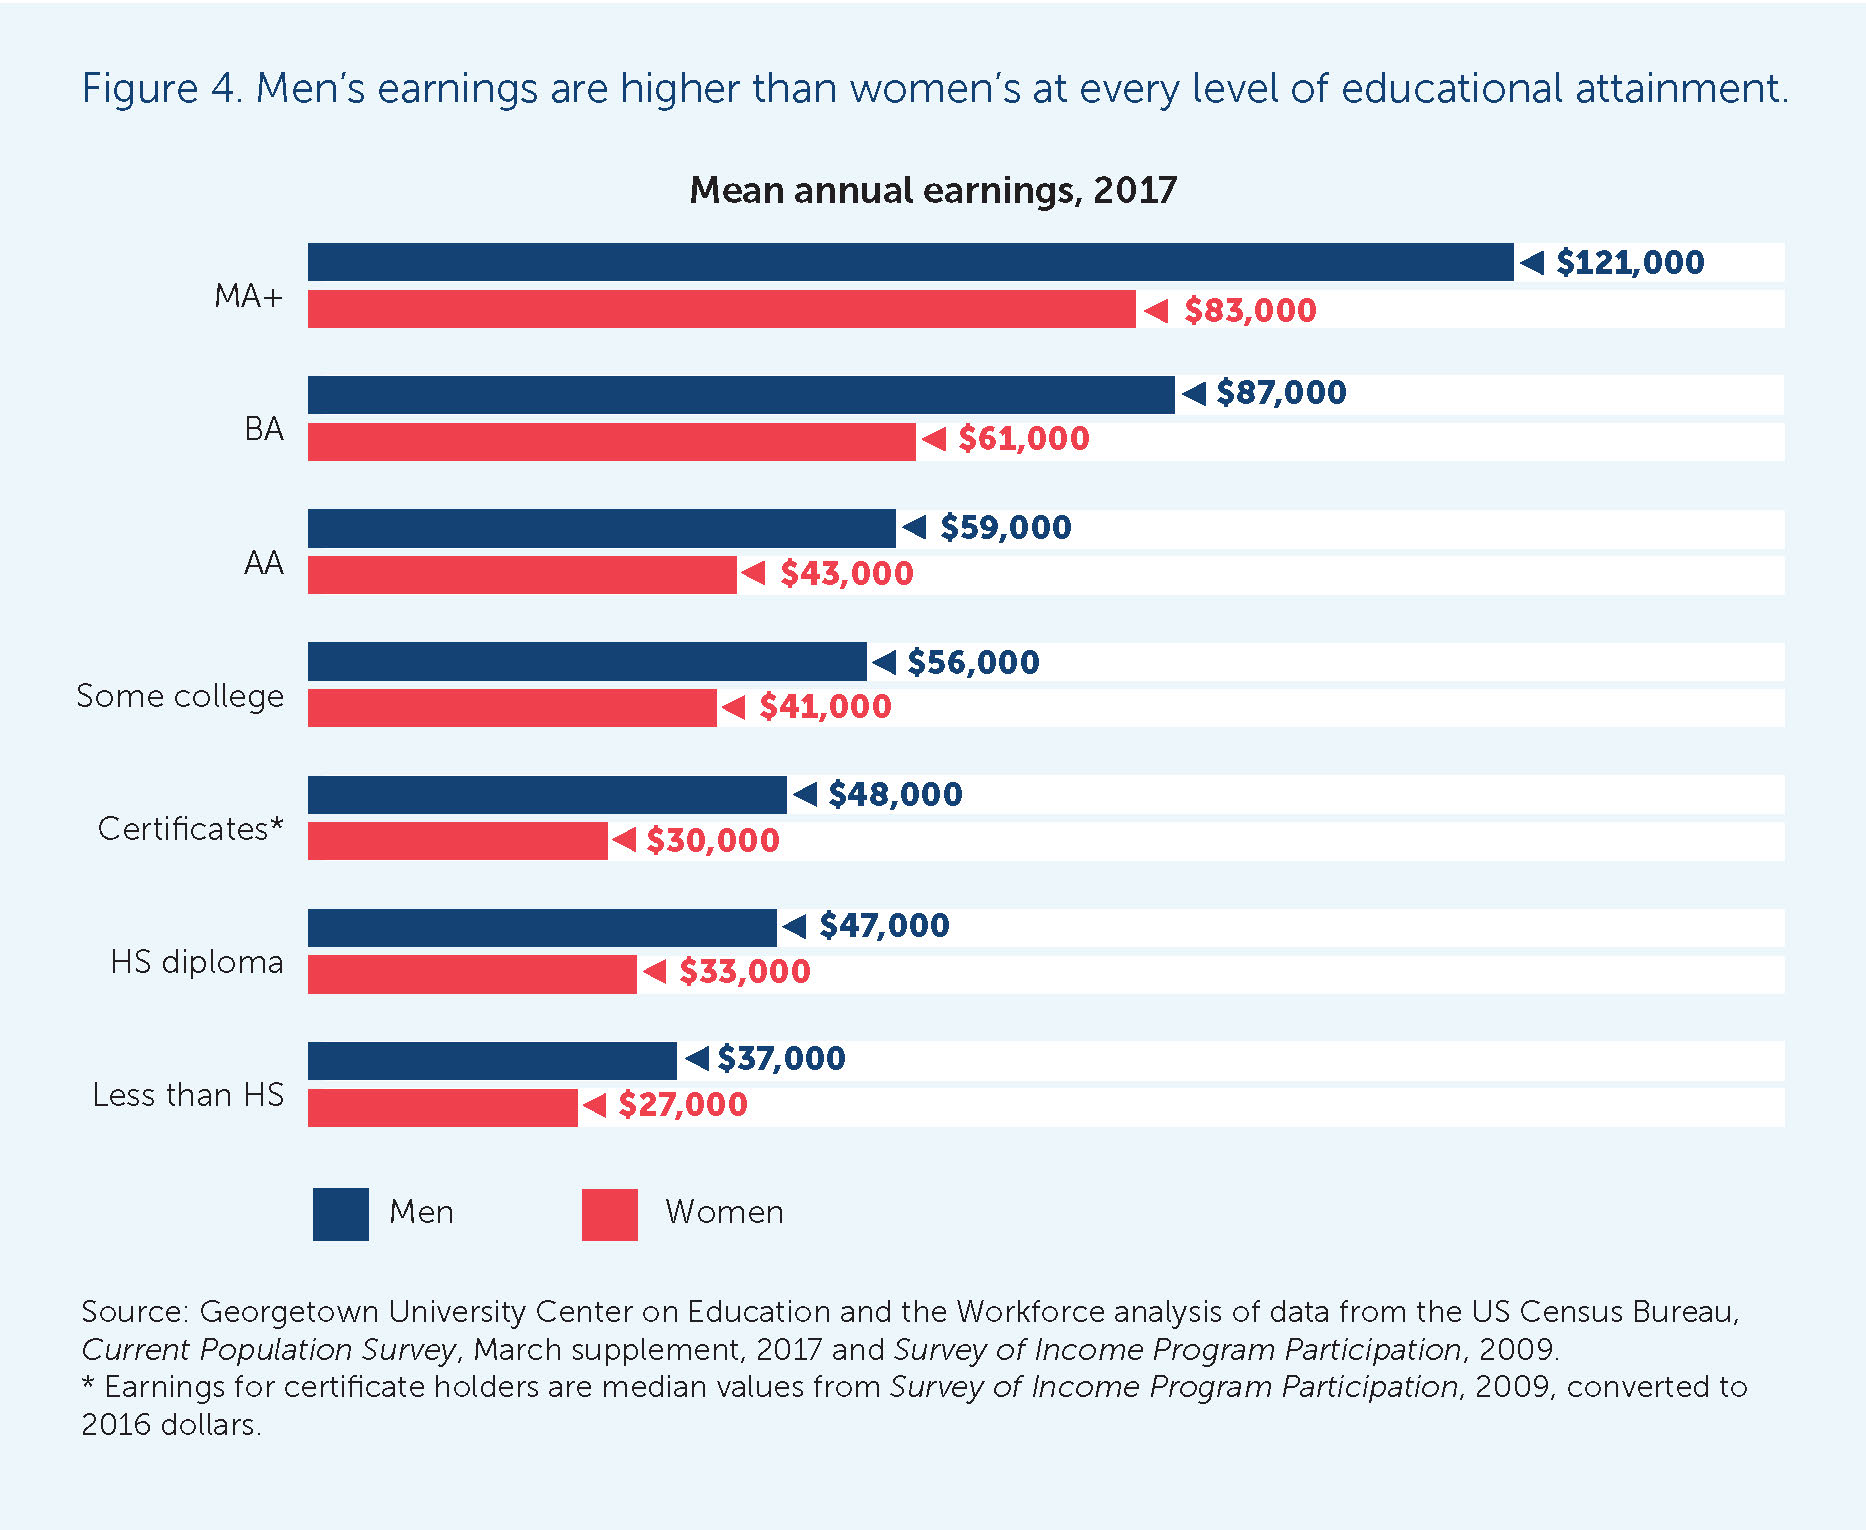 Women's vs. Men's pay at all education levels